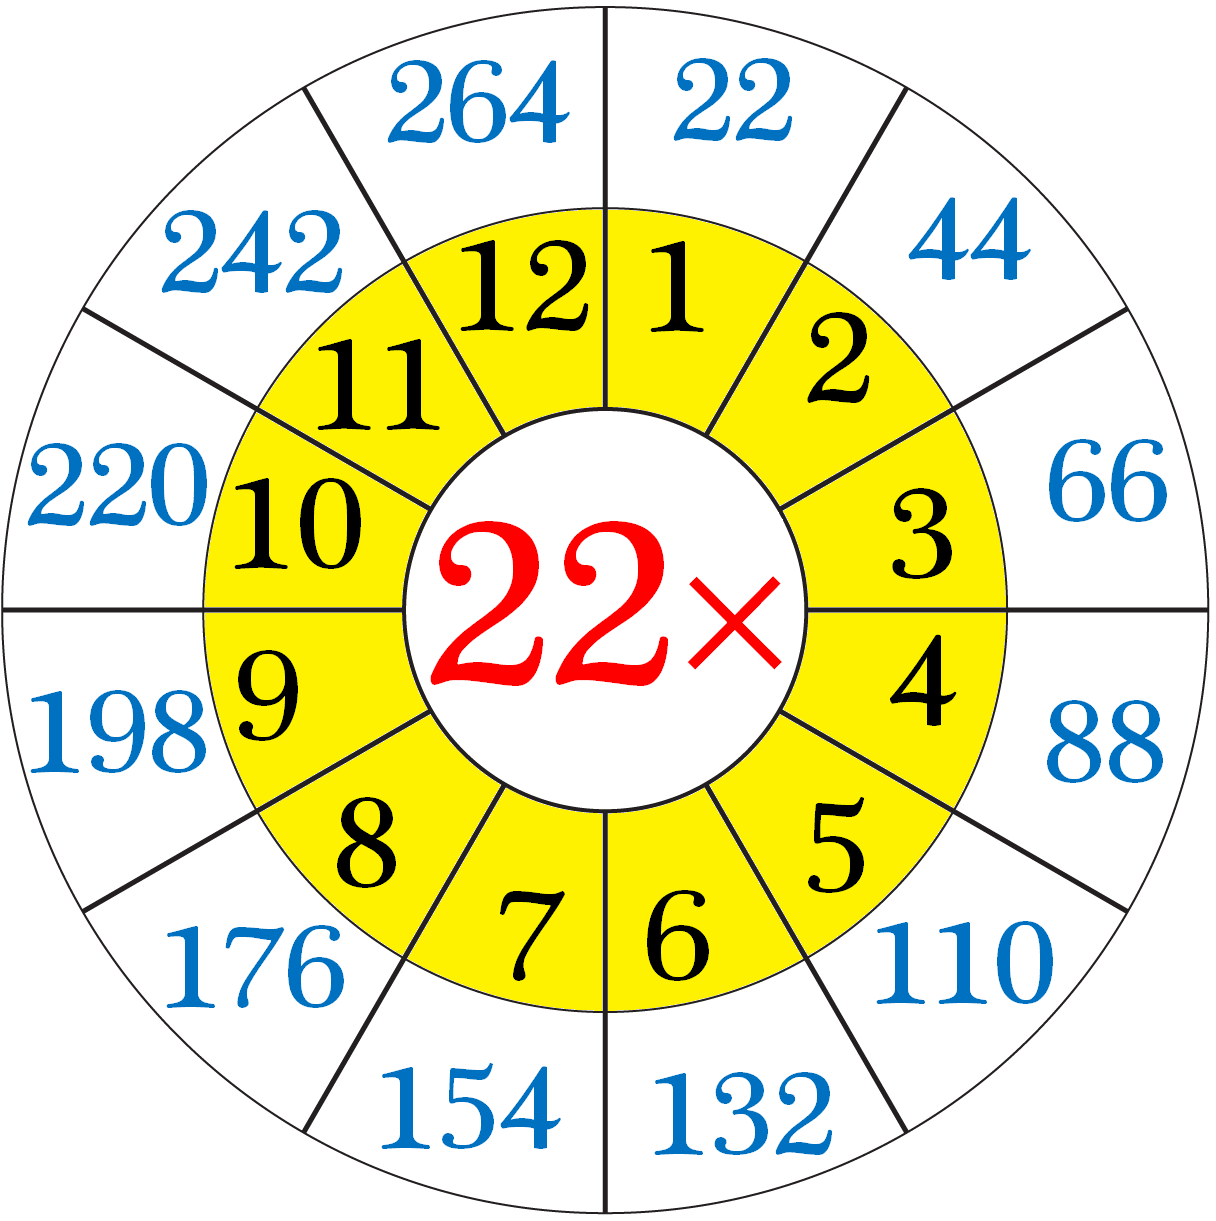 Multiplication Table of 22